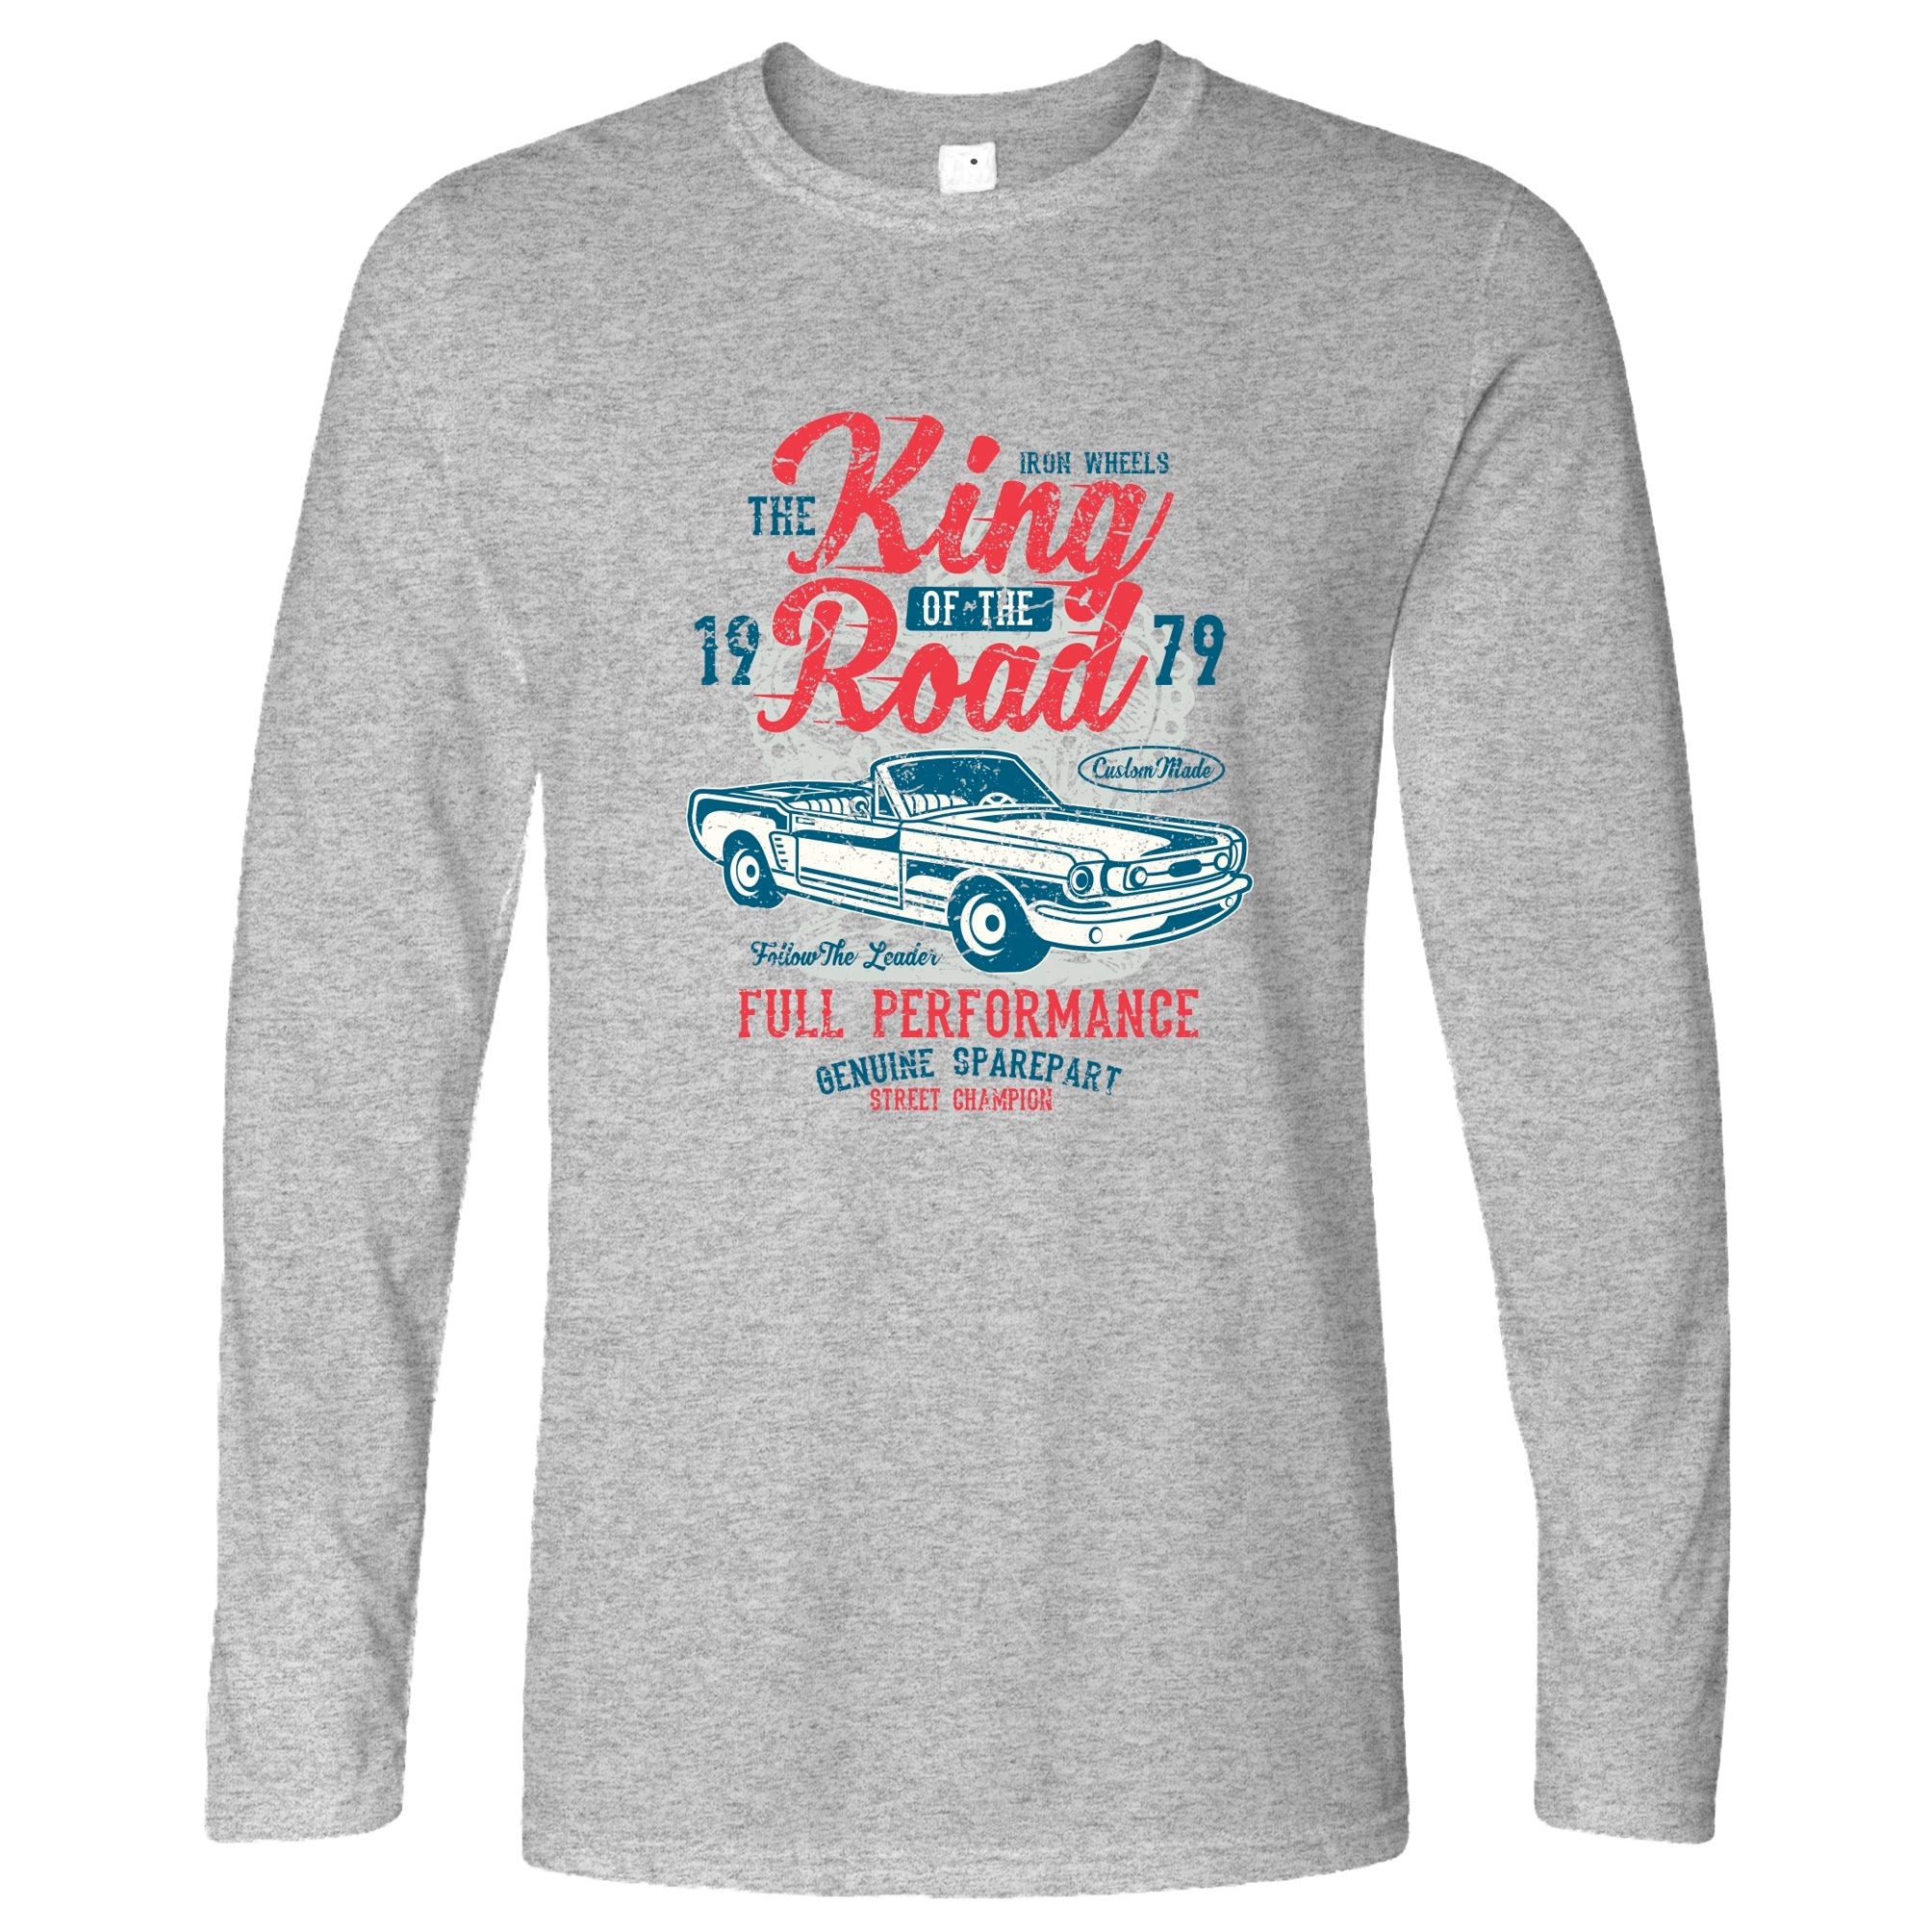 Retro Car Long Sleeve King Of The Road 1979 Racing Art T-Shirt